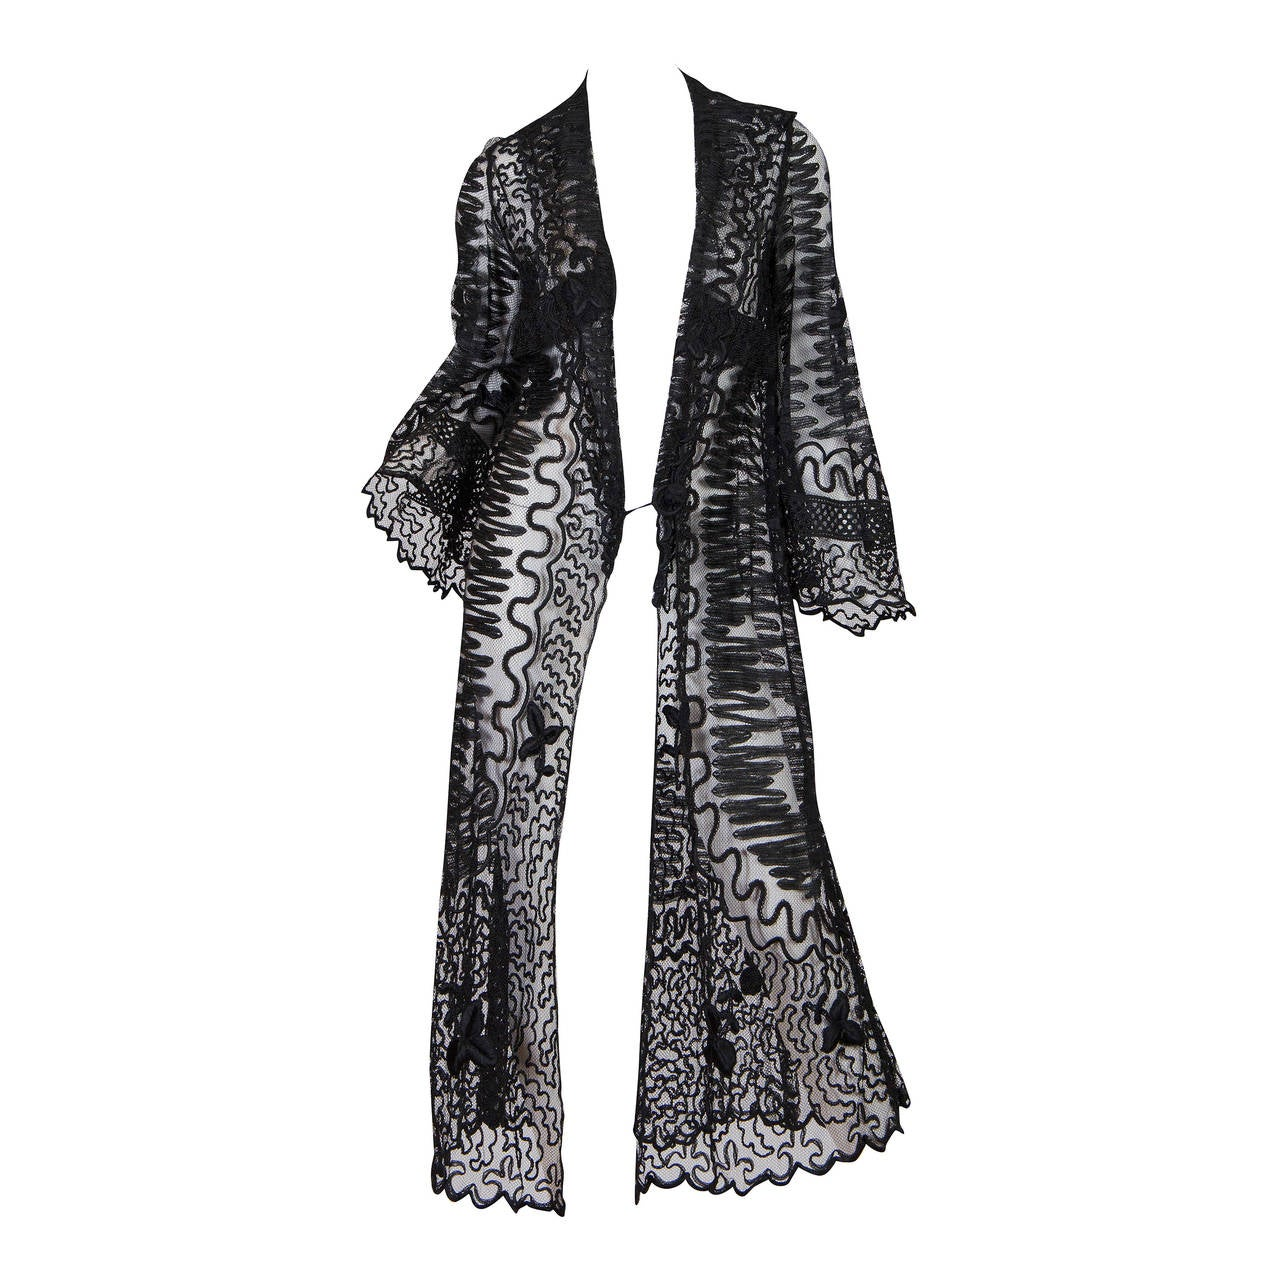 Edwardian Embroidered Soutash Net Duster 1